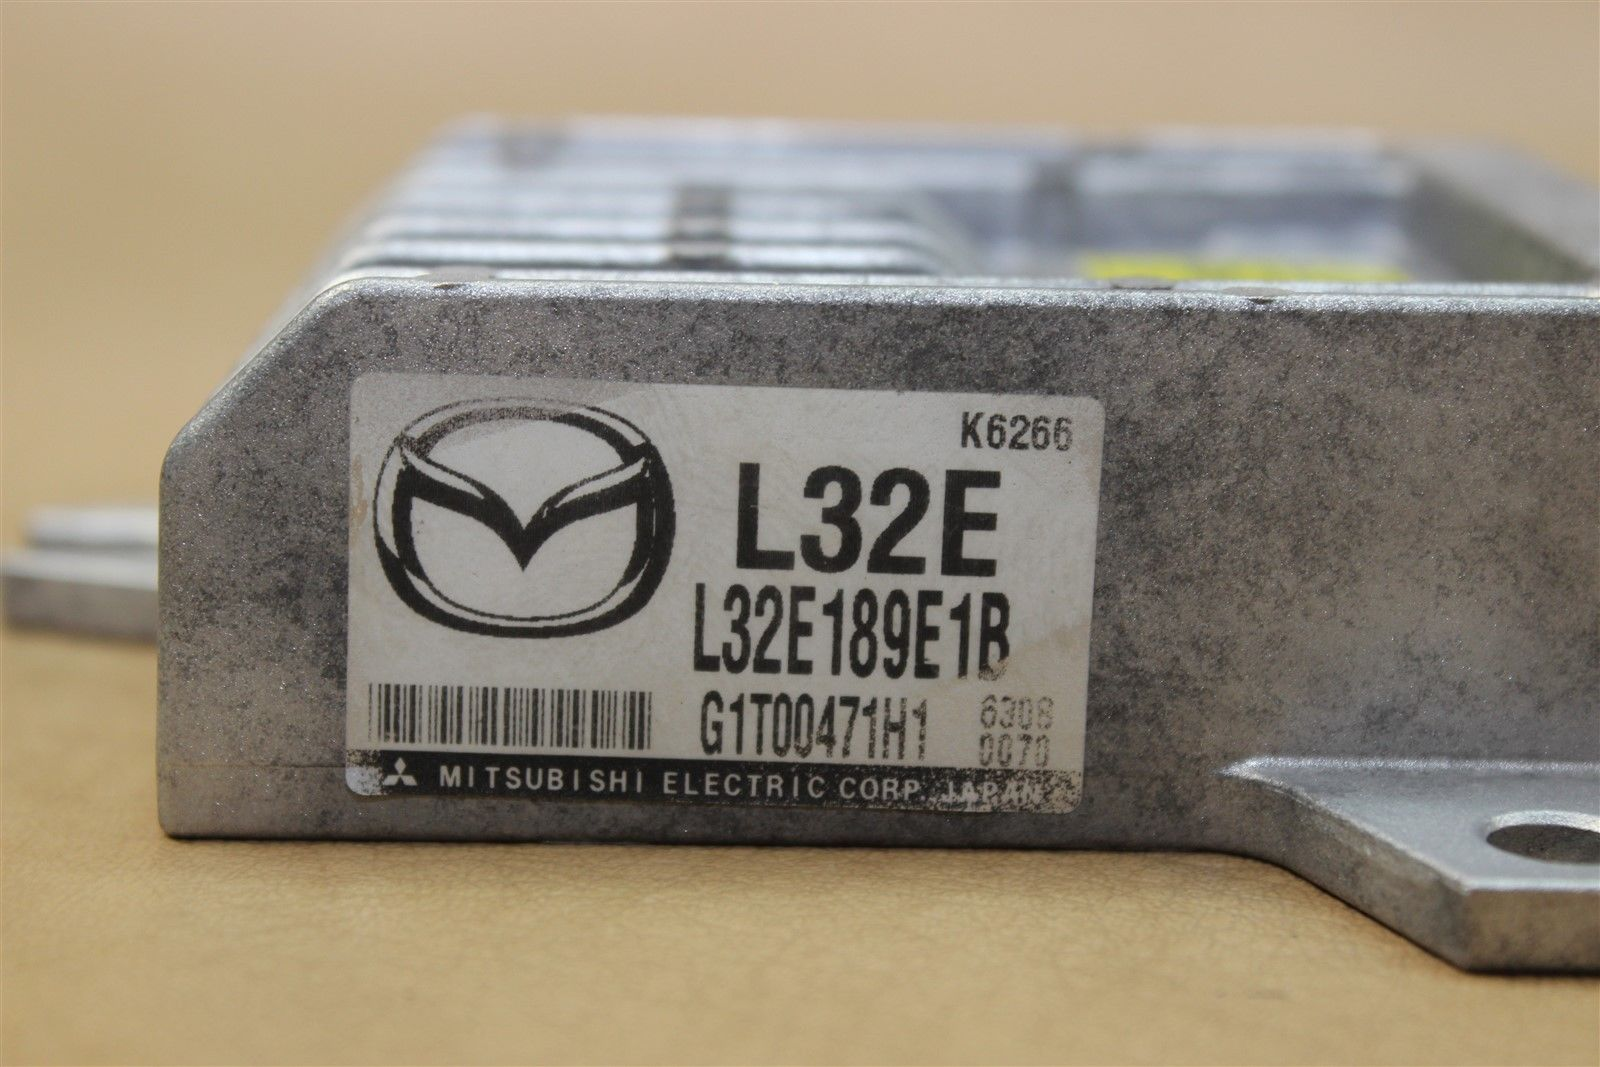 06 Mazda3 Mazda 3 Tcu Tcm Transmission Control Module Unit L32e Mitsubishi L32e189e1b Does Not Apply 1009